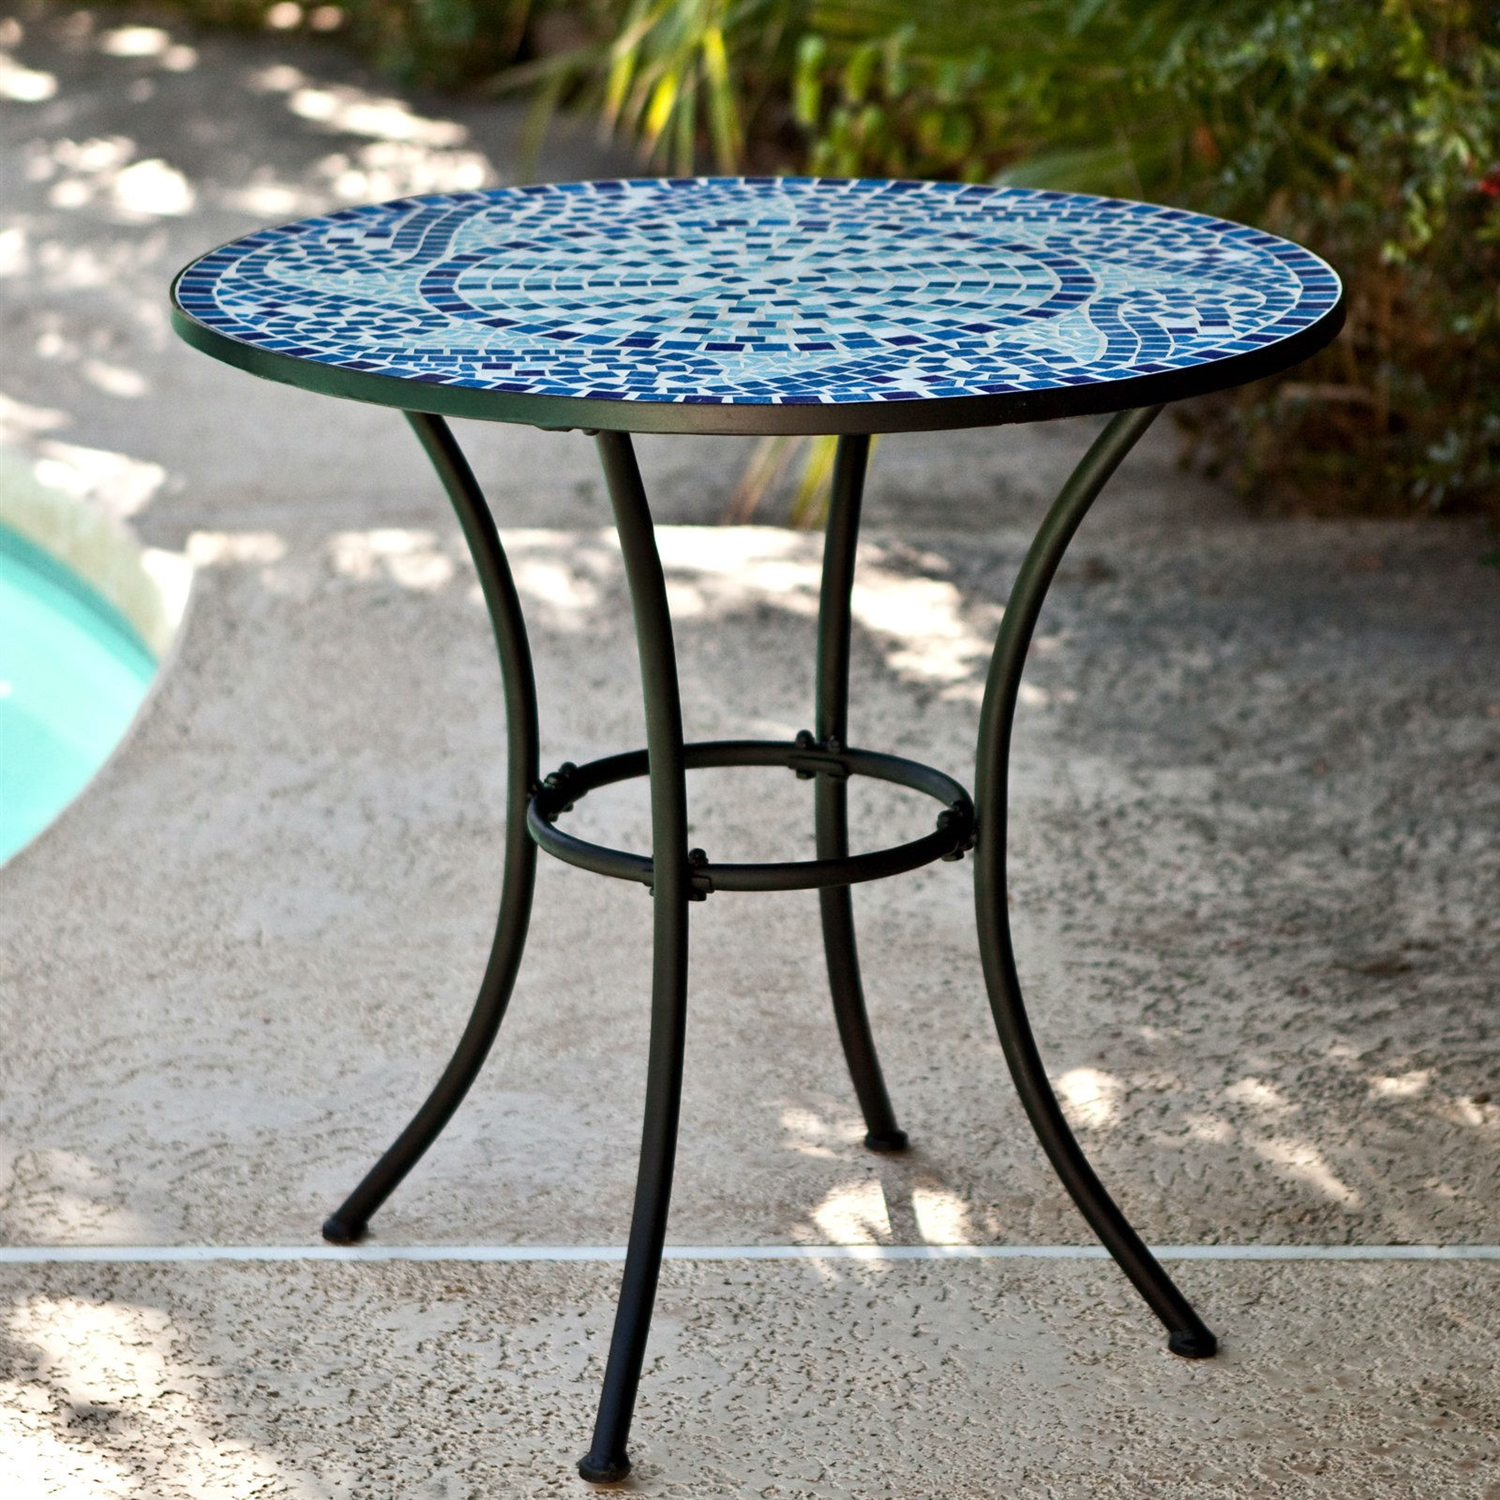 Inch Round Metal Outdoor Bistro Patio Table With HandLaid Blue - 30 inch round outdoor table